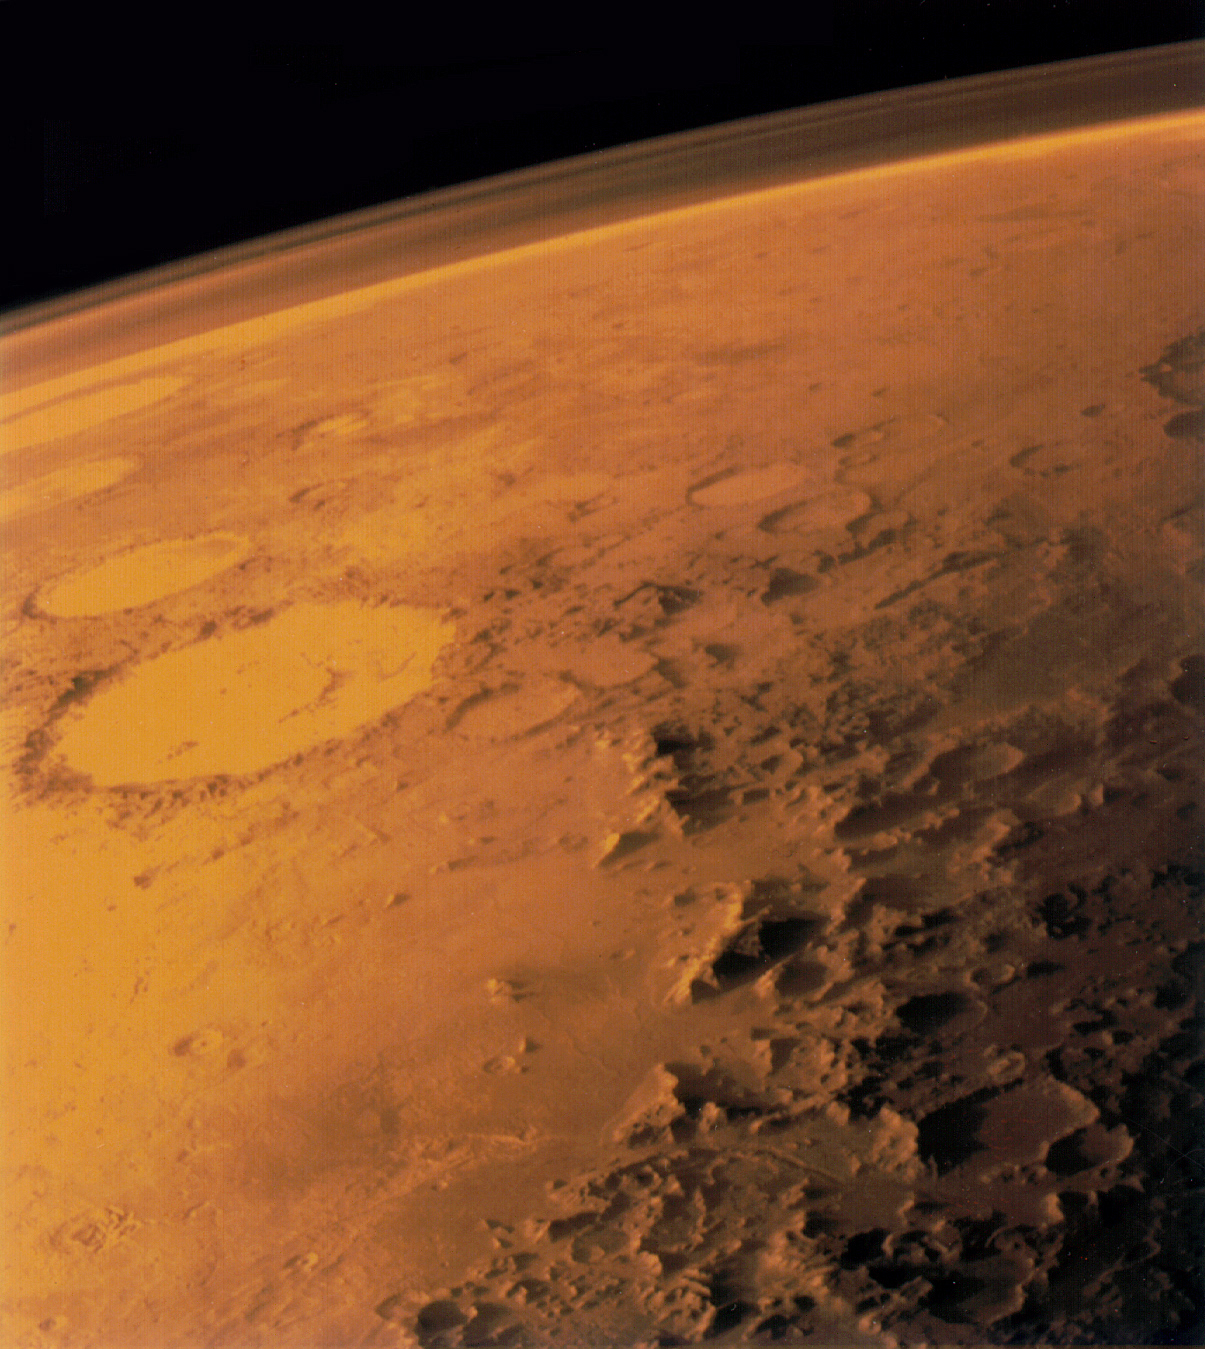 Viking 1 orbiter image shows the thin atmosphere of Mars. - Image Credit  NASA via Wikimedia Commons